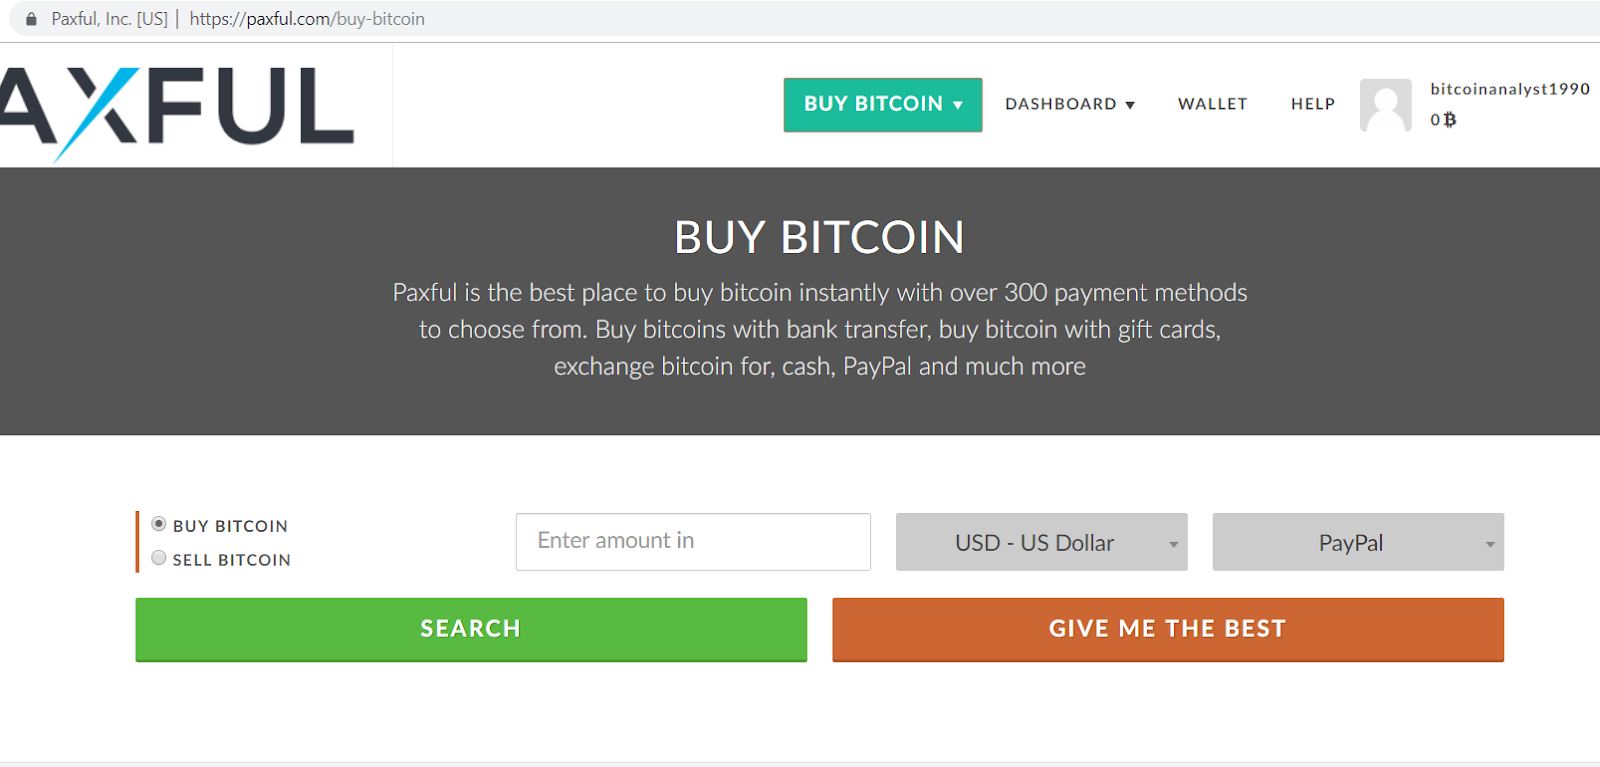 Paxful buy bitcoin form.